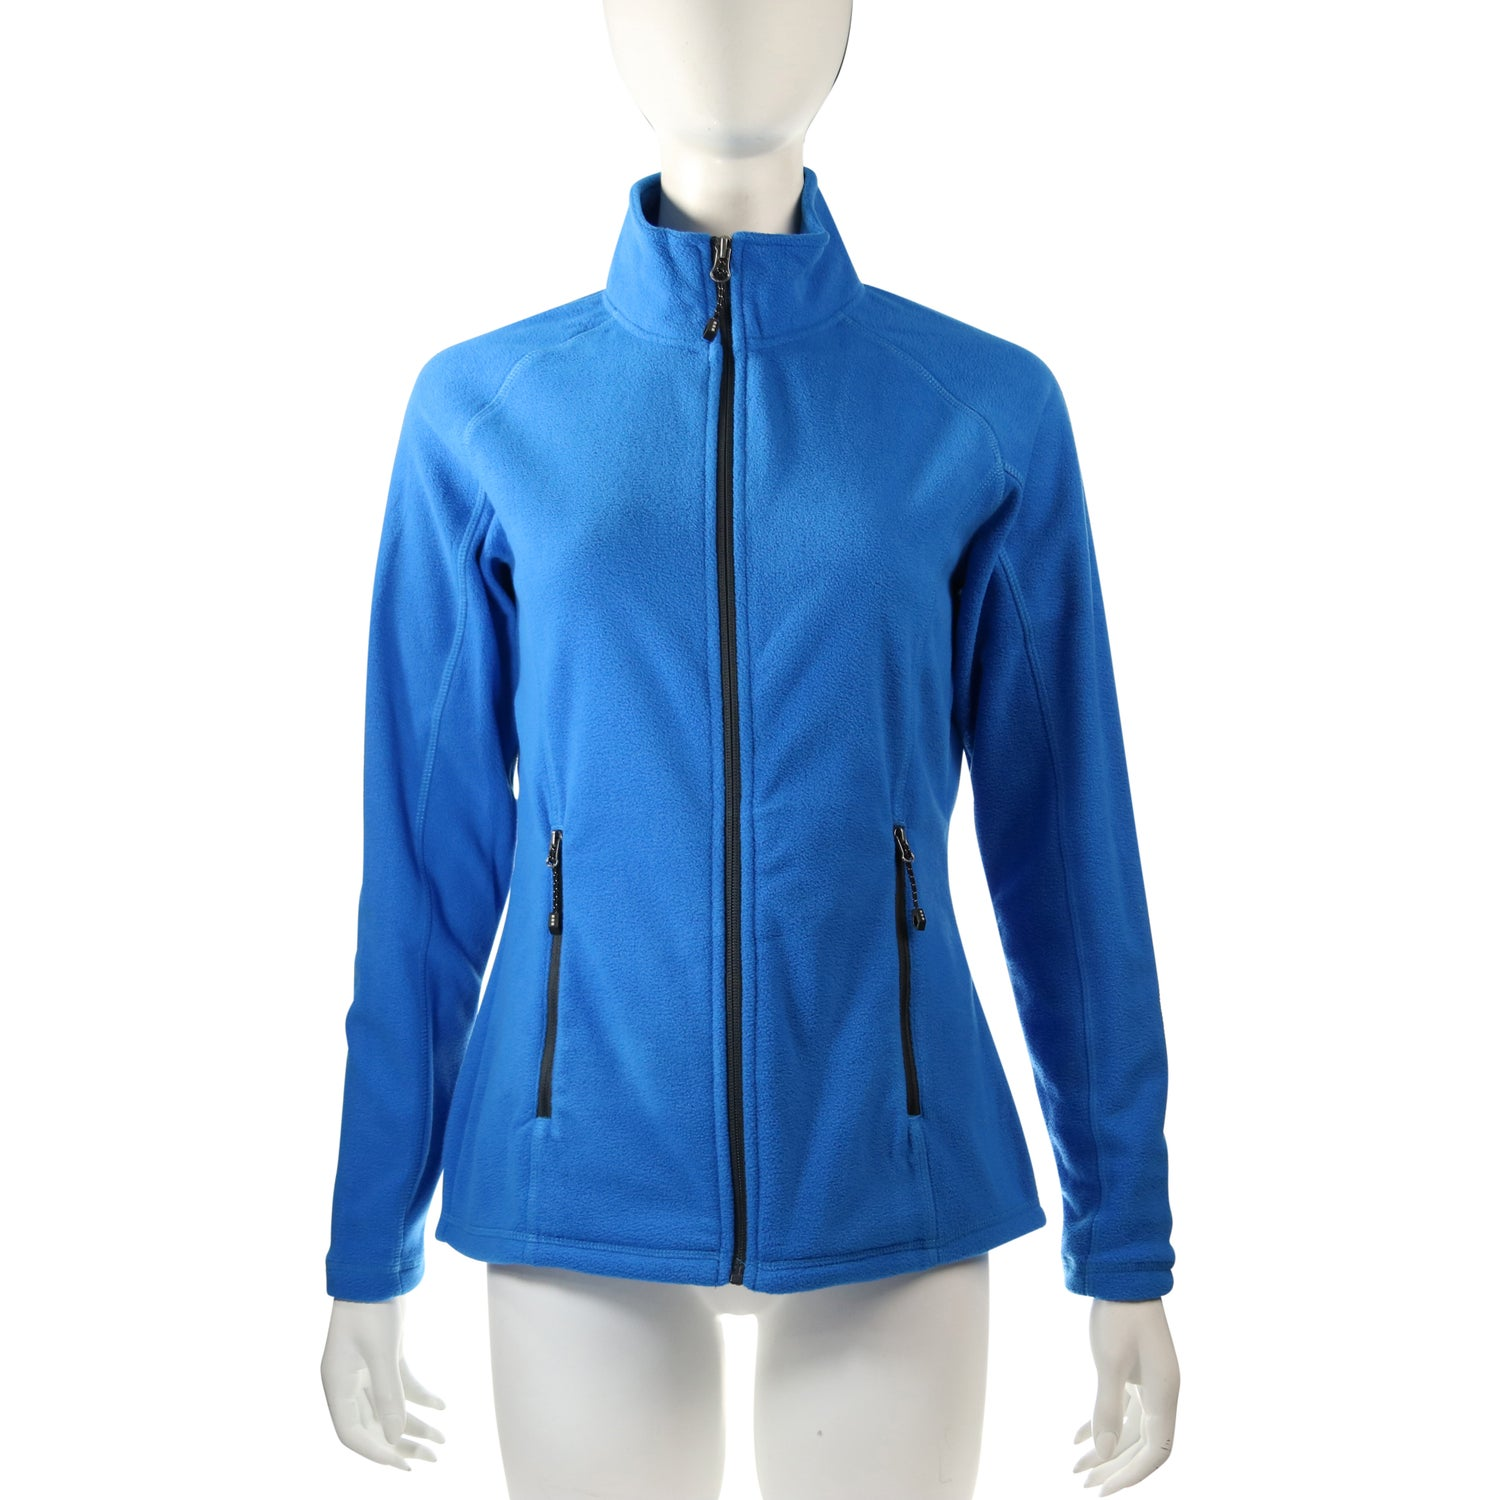 new style 464ad 04798 CLICK HERE to Order Women s Rixford Polyfleece Jacket by TRIMARKs Printed  with Your Logo for  25.10 Ea.